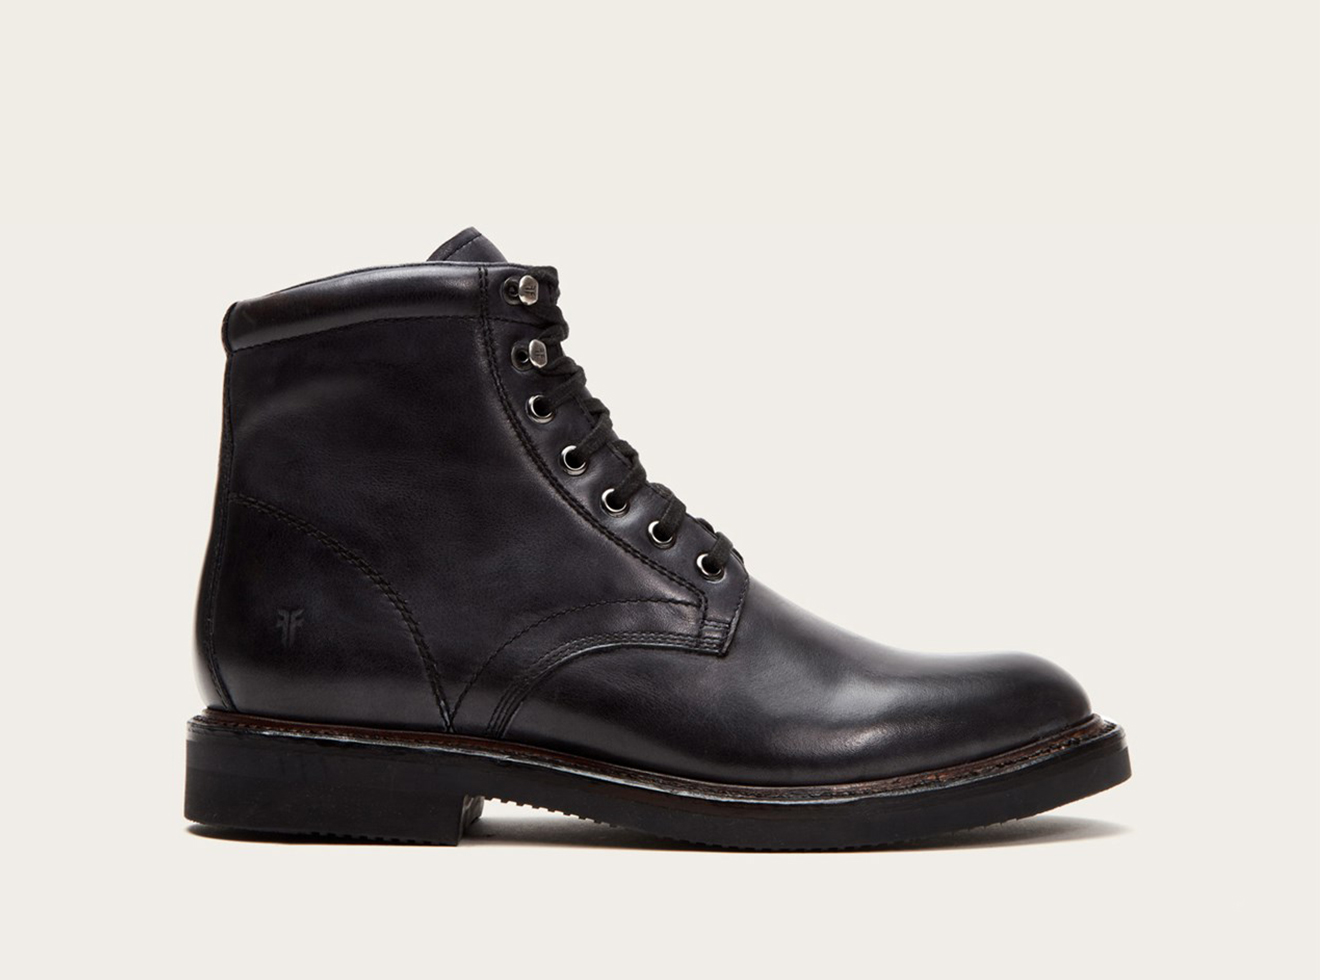 Gordon Lace Up Boots